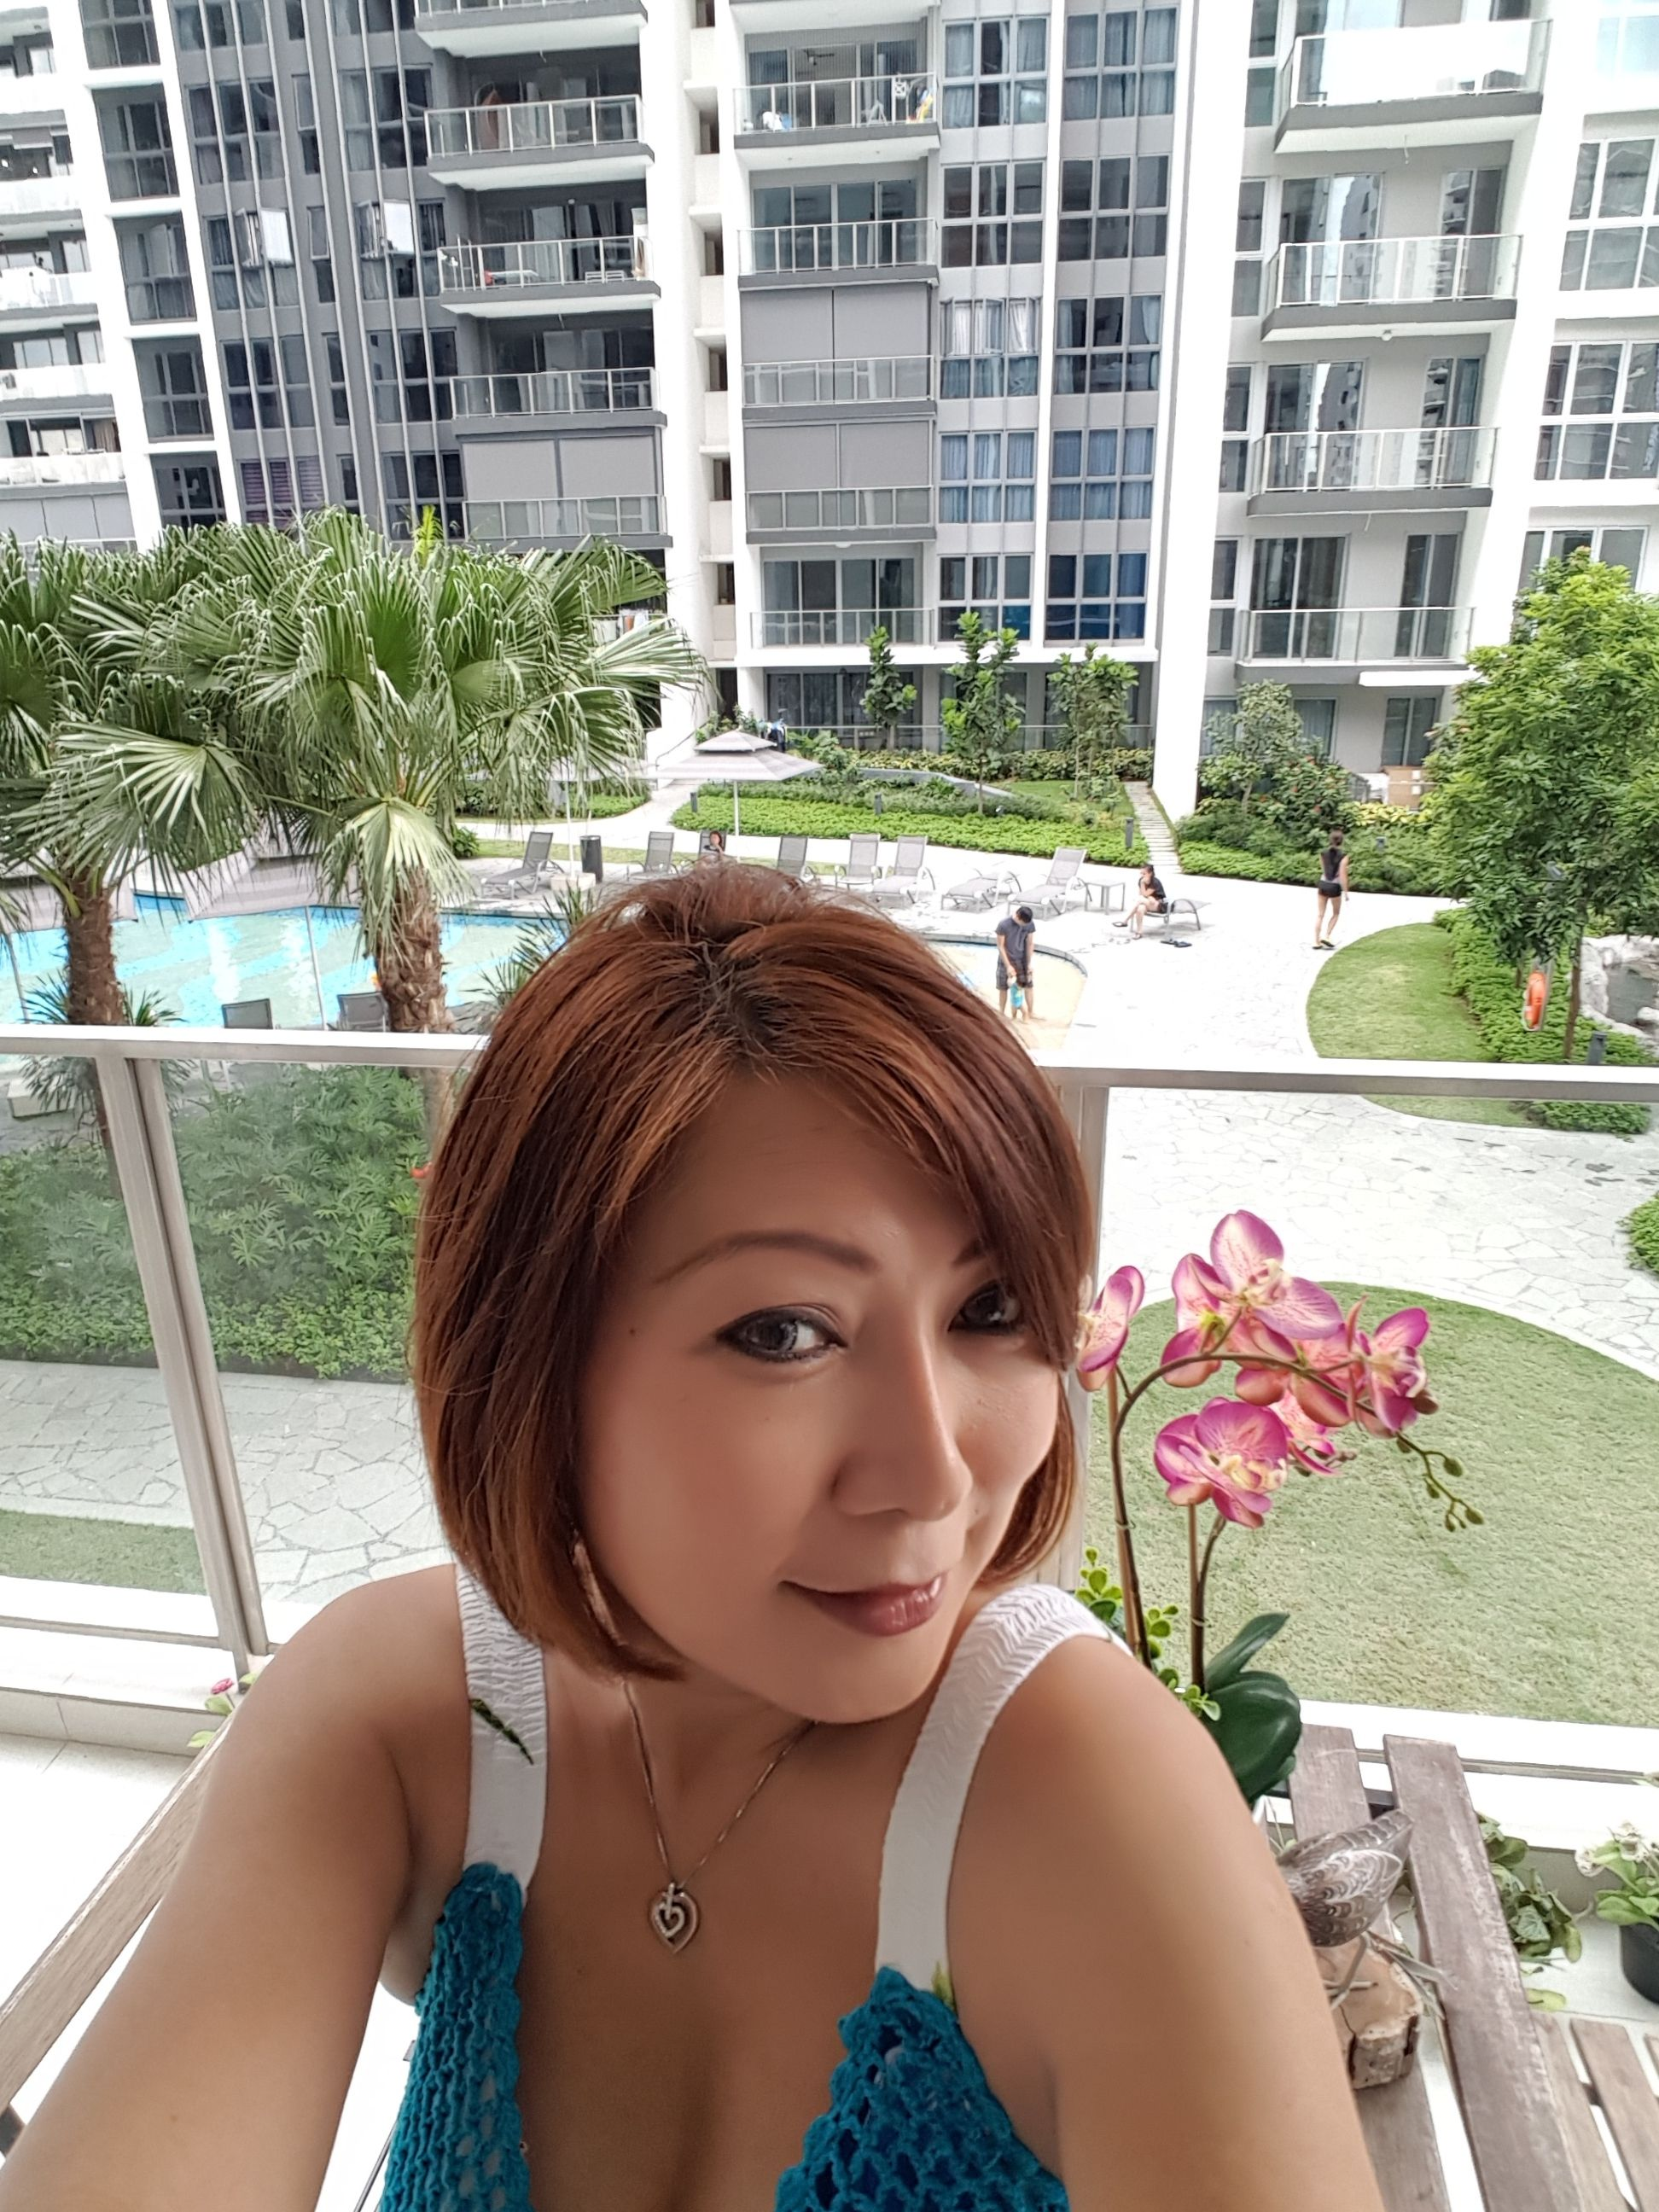 single dating sites singapore Society w ™ is an exclusive dating & matchmaking service for remarkable single people, with one of the highest success rates in the global matchmaking industry.